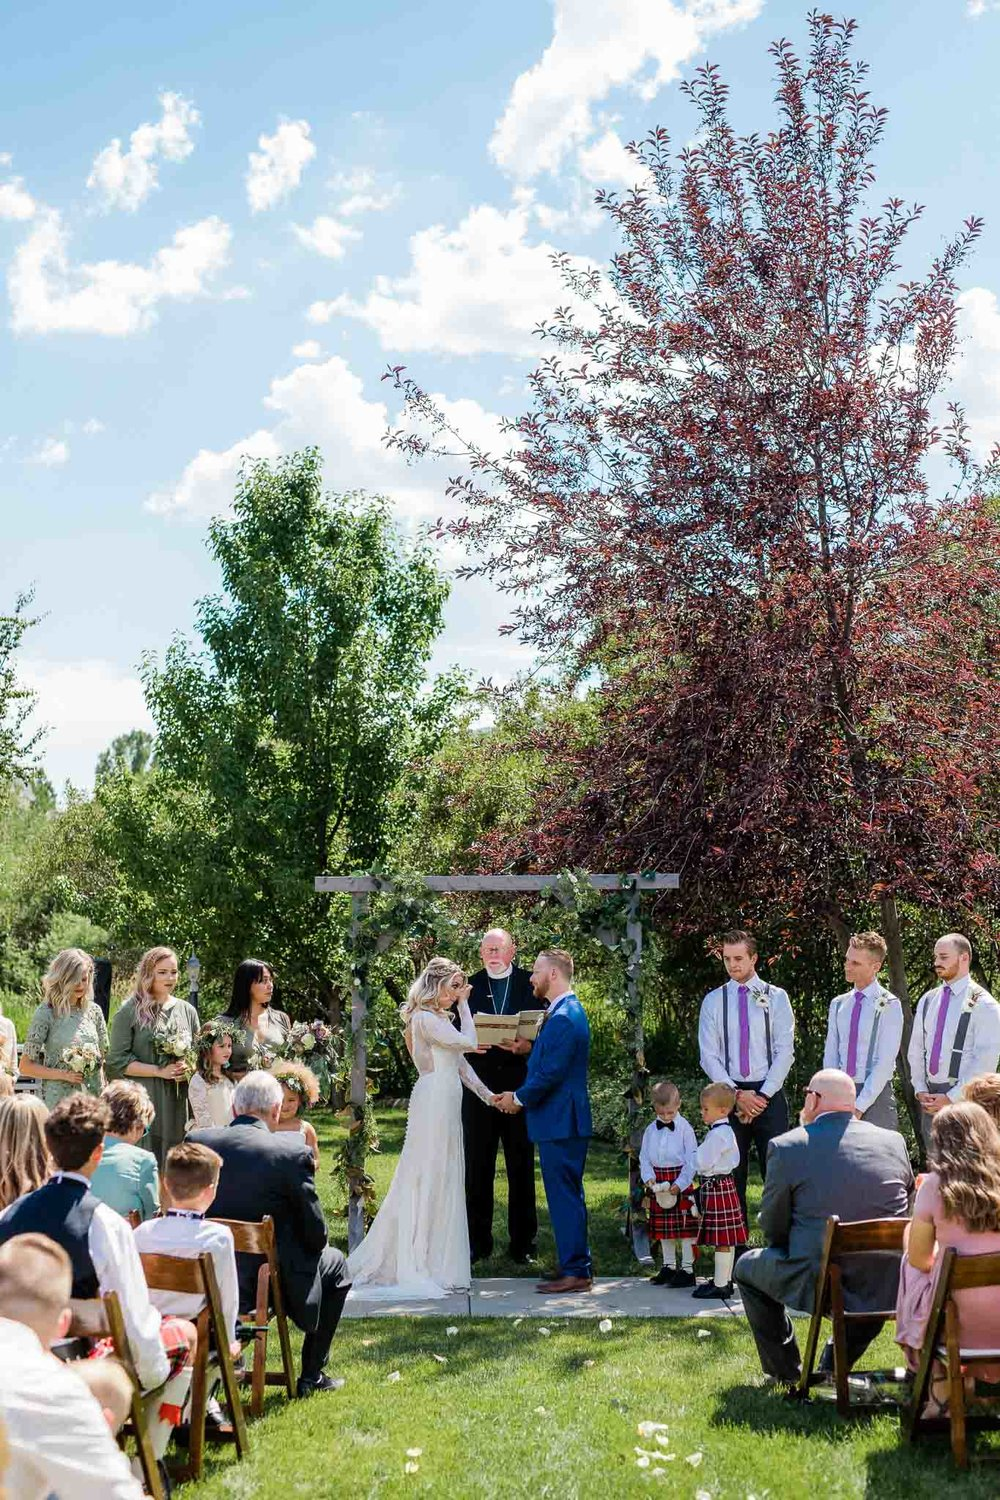 Bride wipes tear from eye Scottish themed wedding ceremony in Midway, Utah